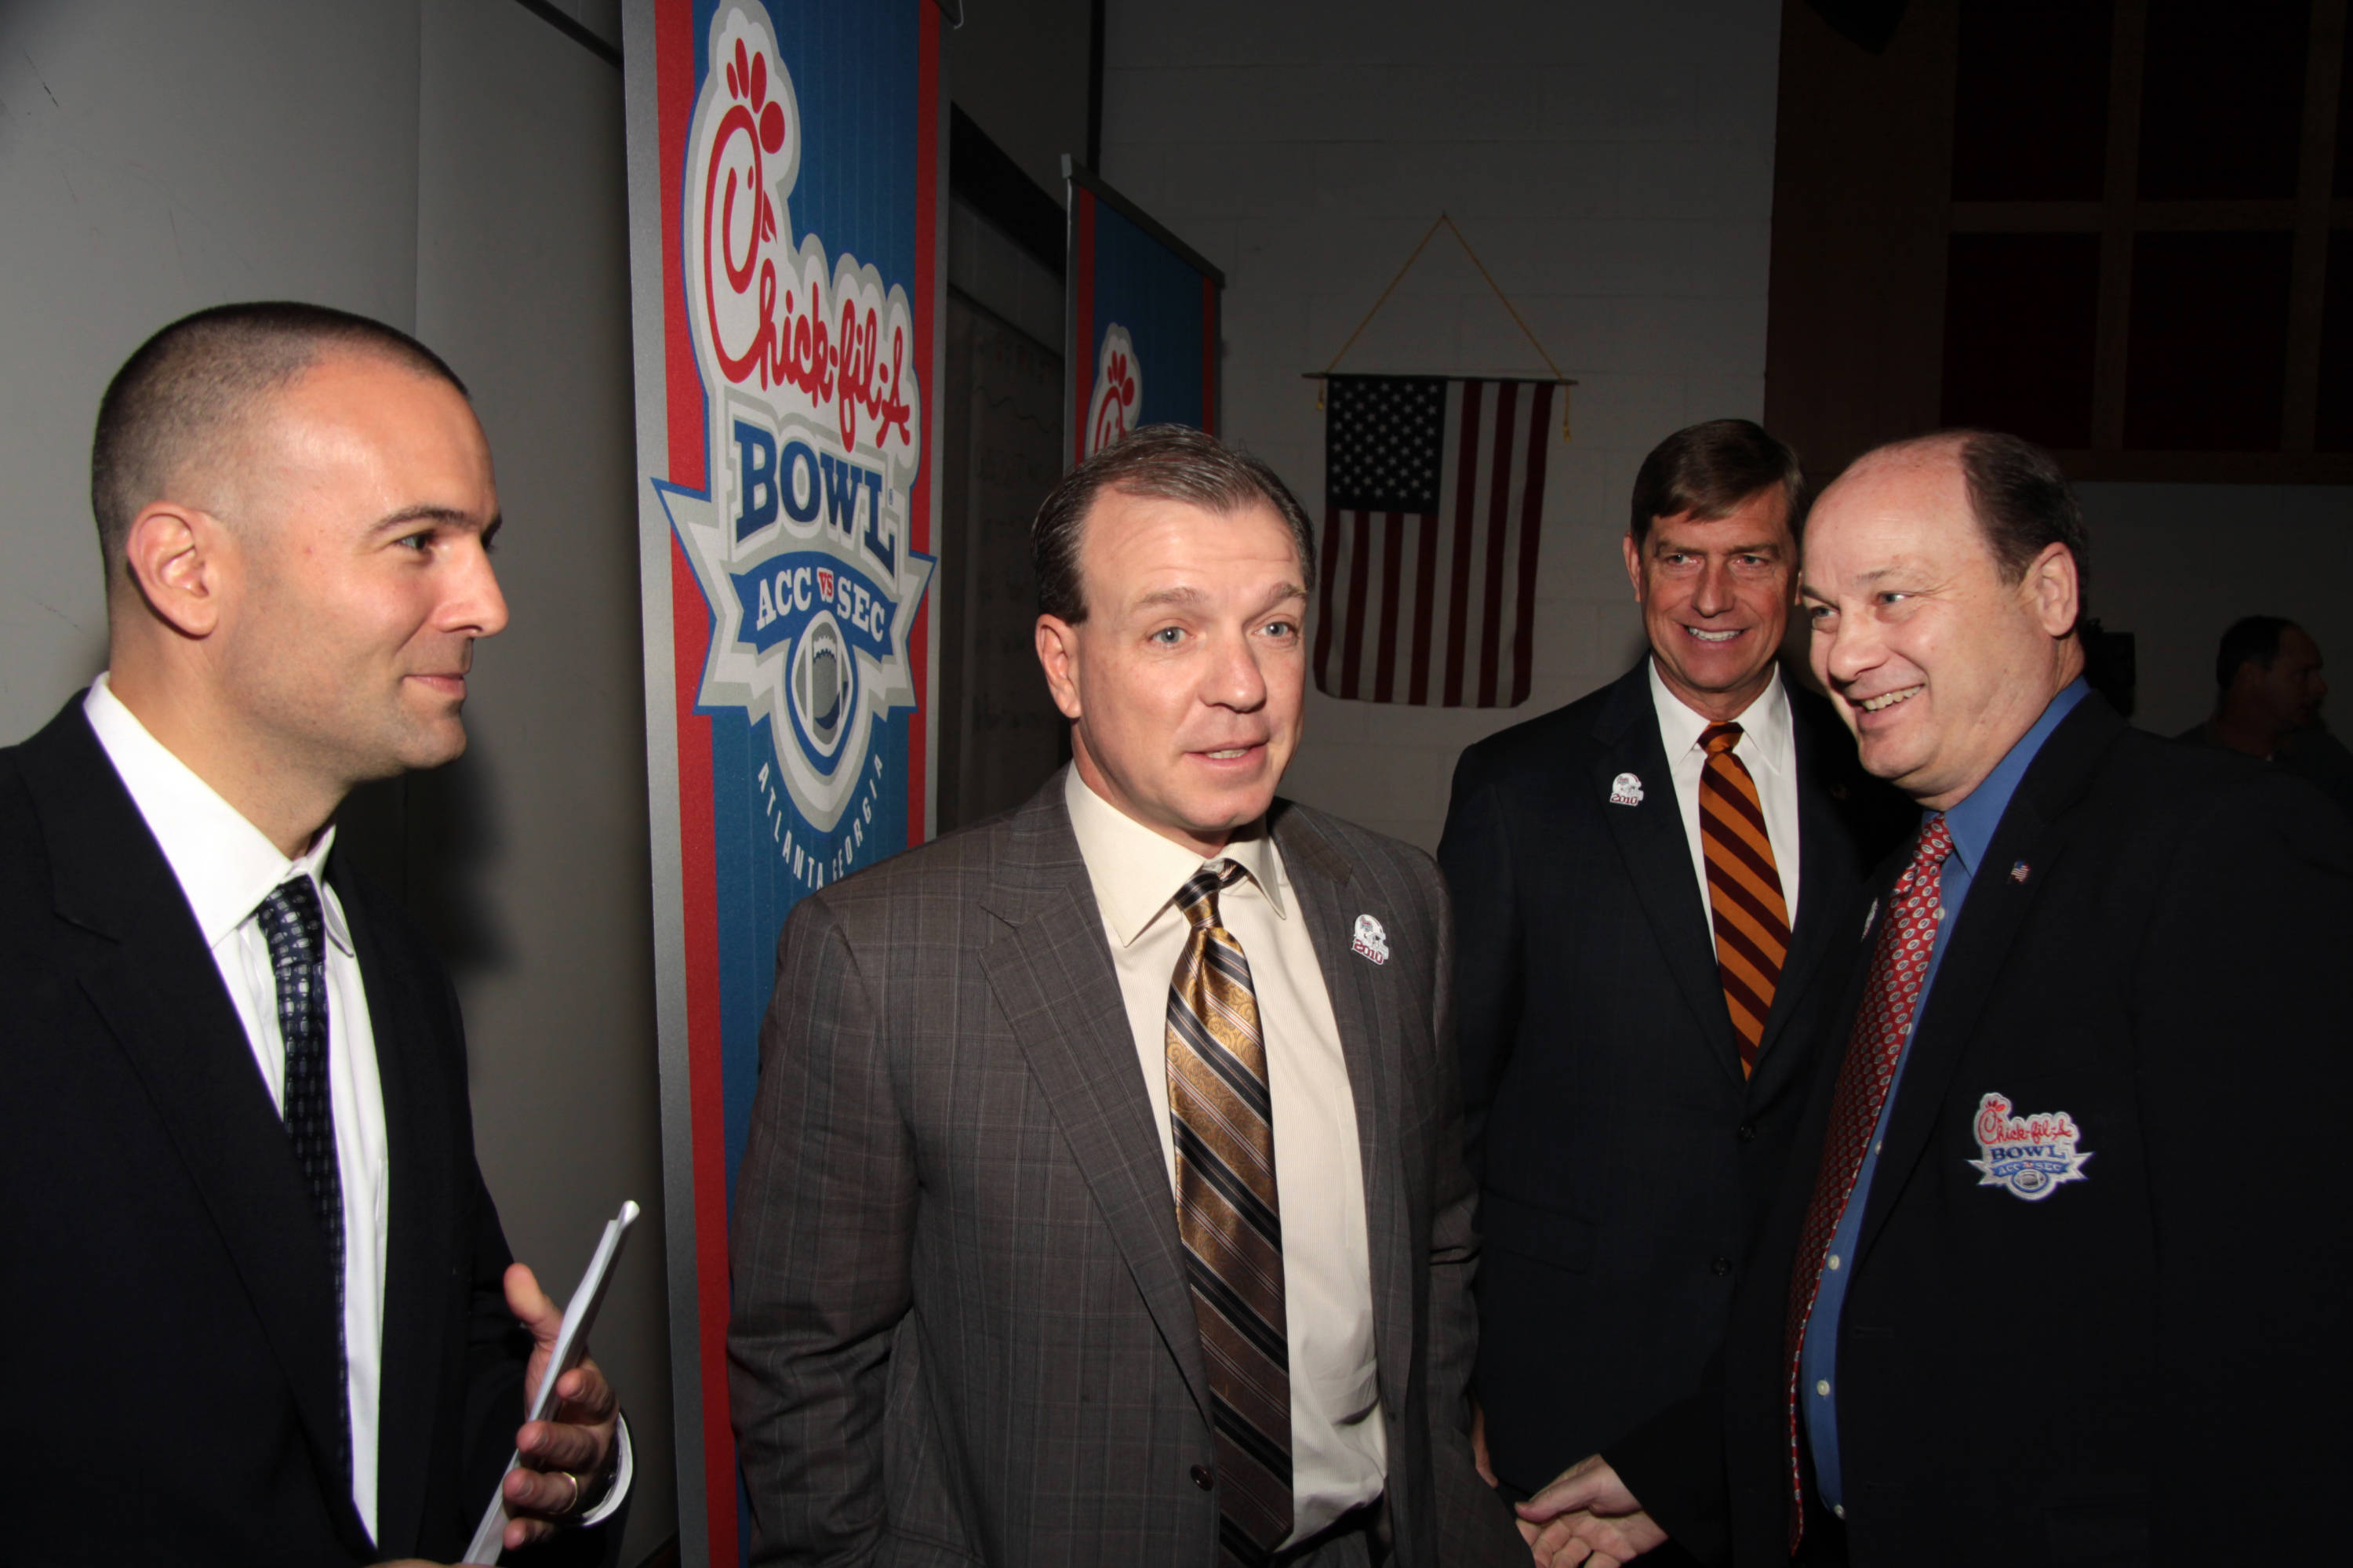 Jimbo Fisher talks with Chick-fil-A executives after the press conference.